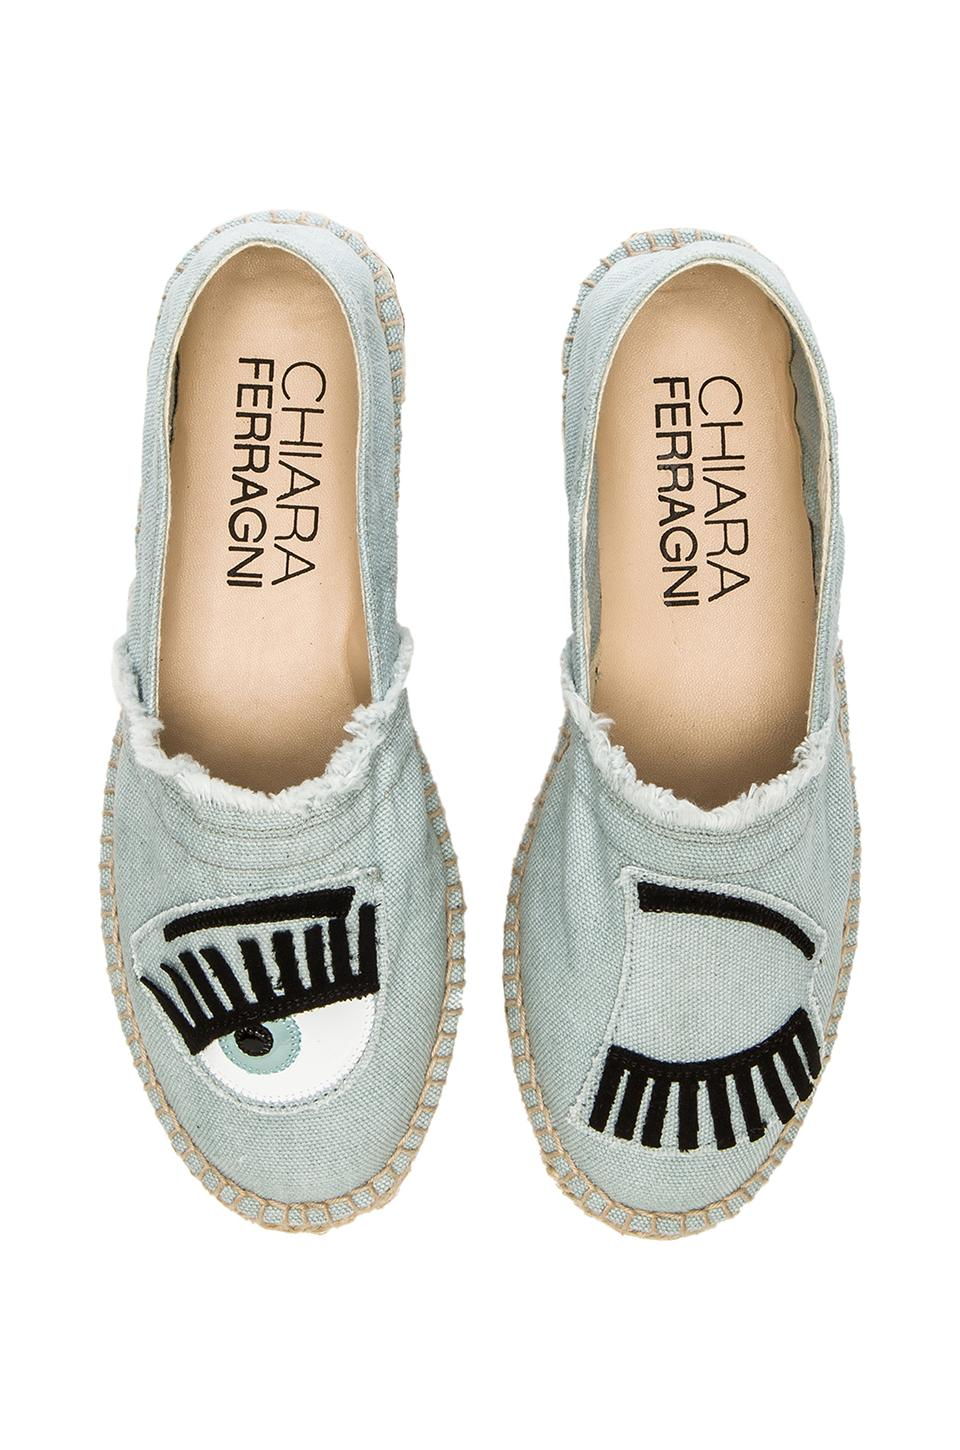 Chiara Ferragni Wink Espadrille in Faded